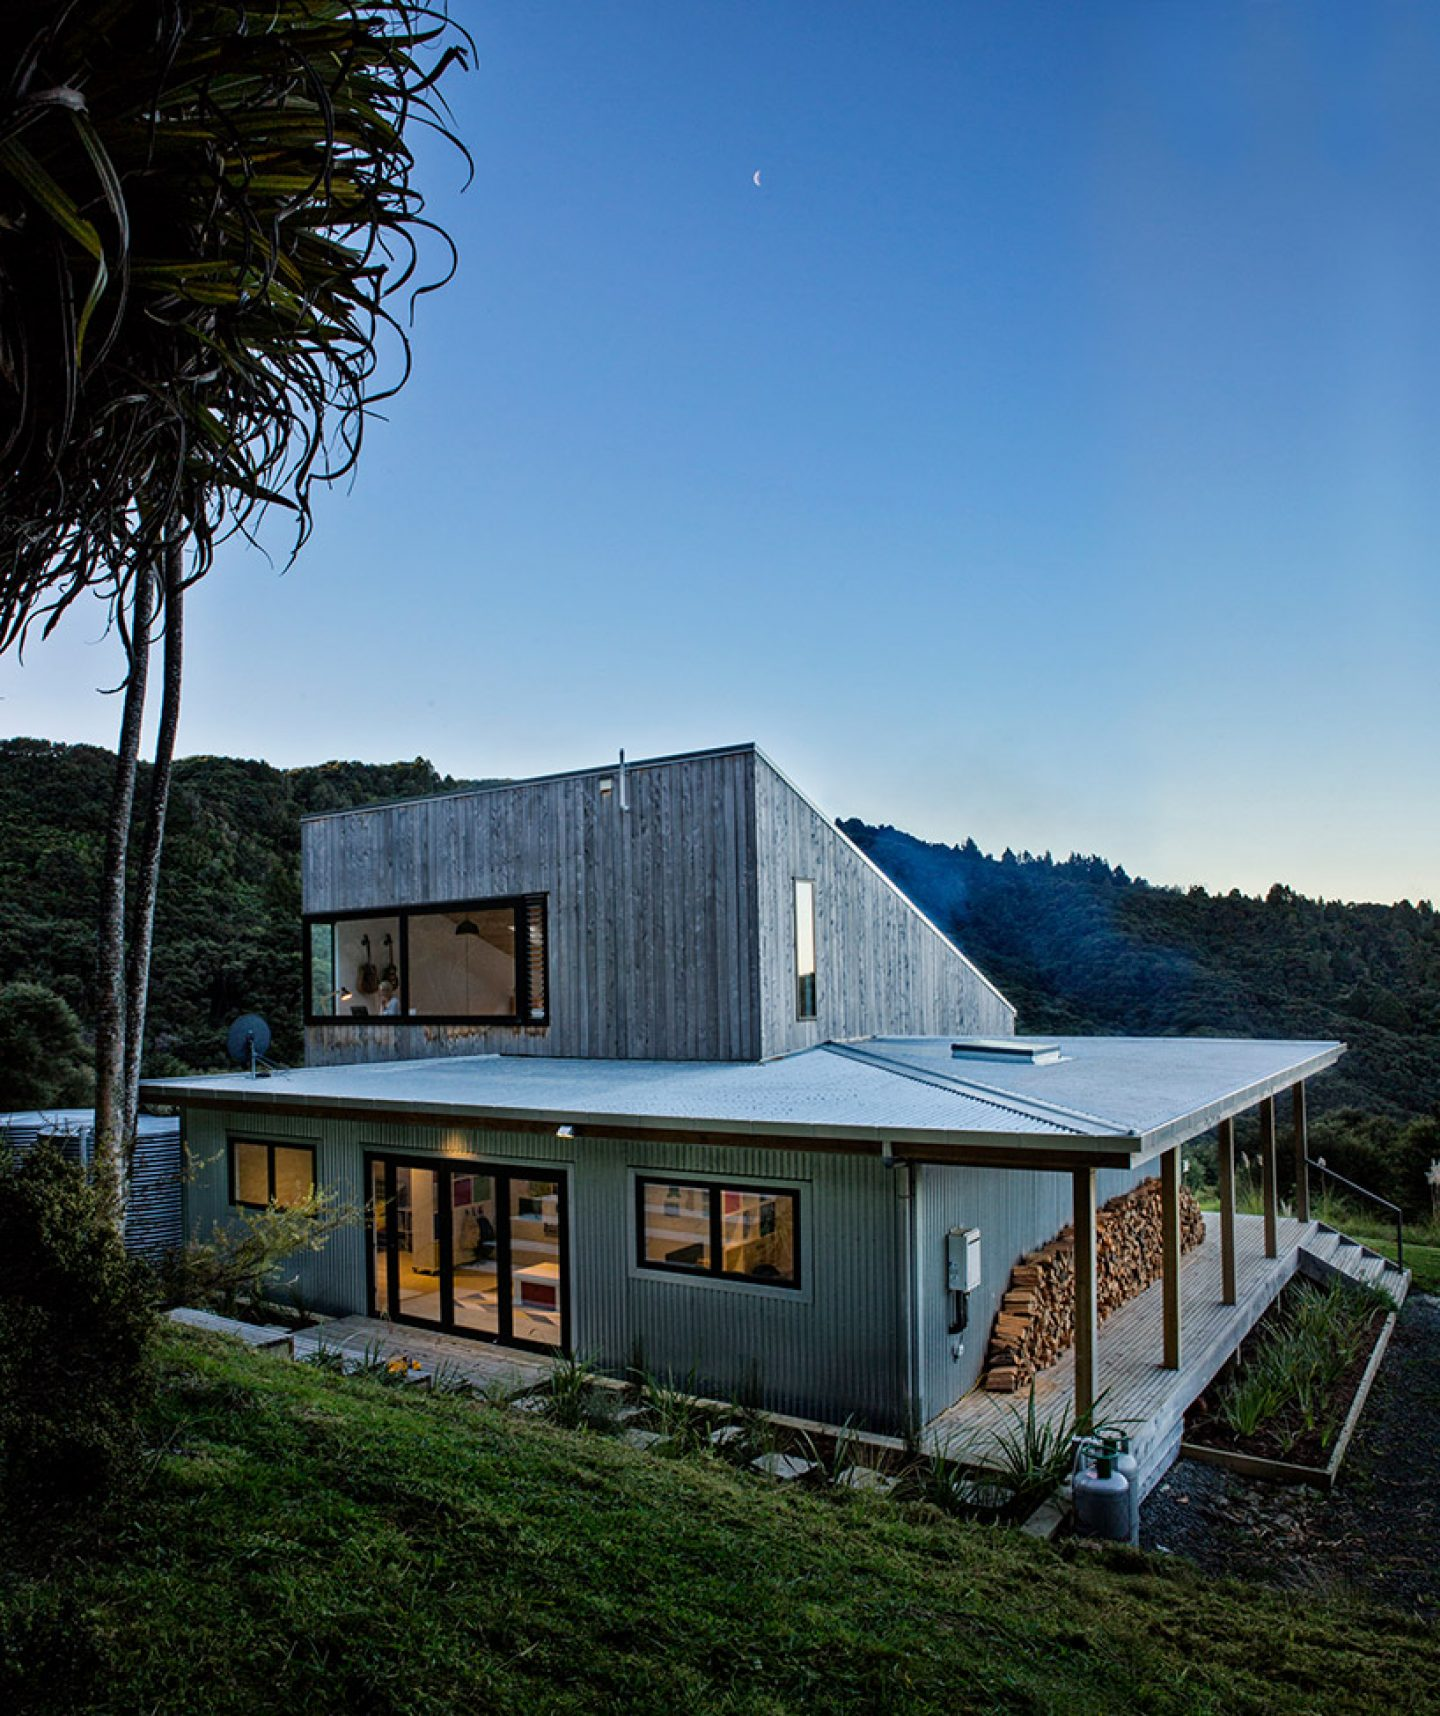 david-maurice-LTD-architectural-back-country-house-puhoi-new-zealand-ignant_08